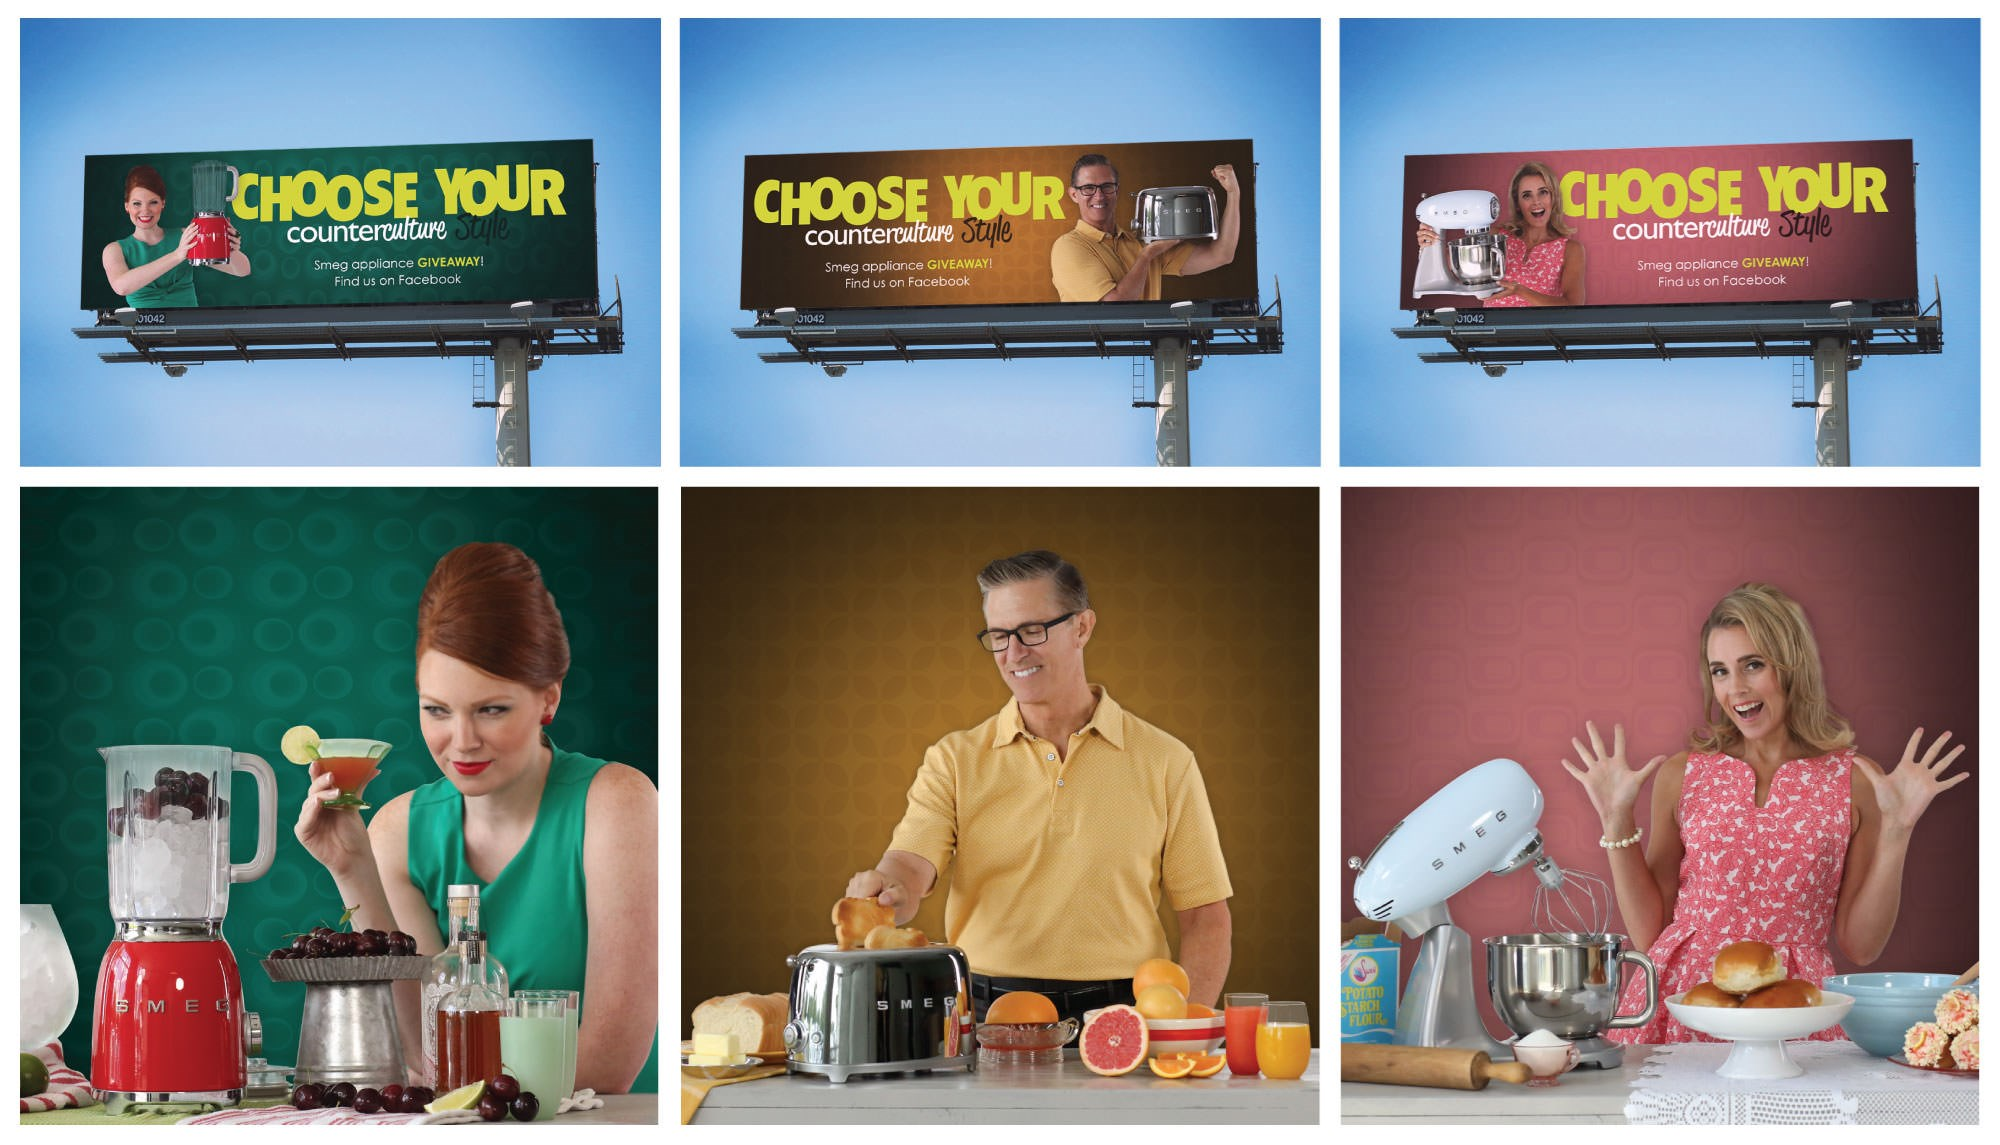 Counter Culture Contest Billboard and Images